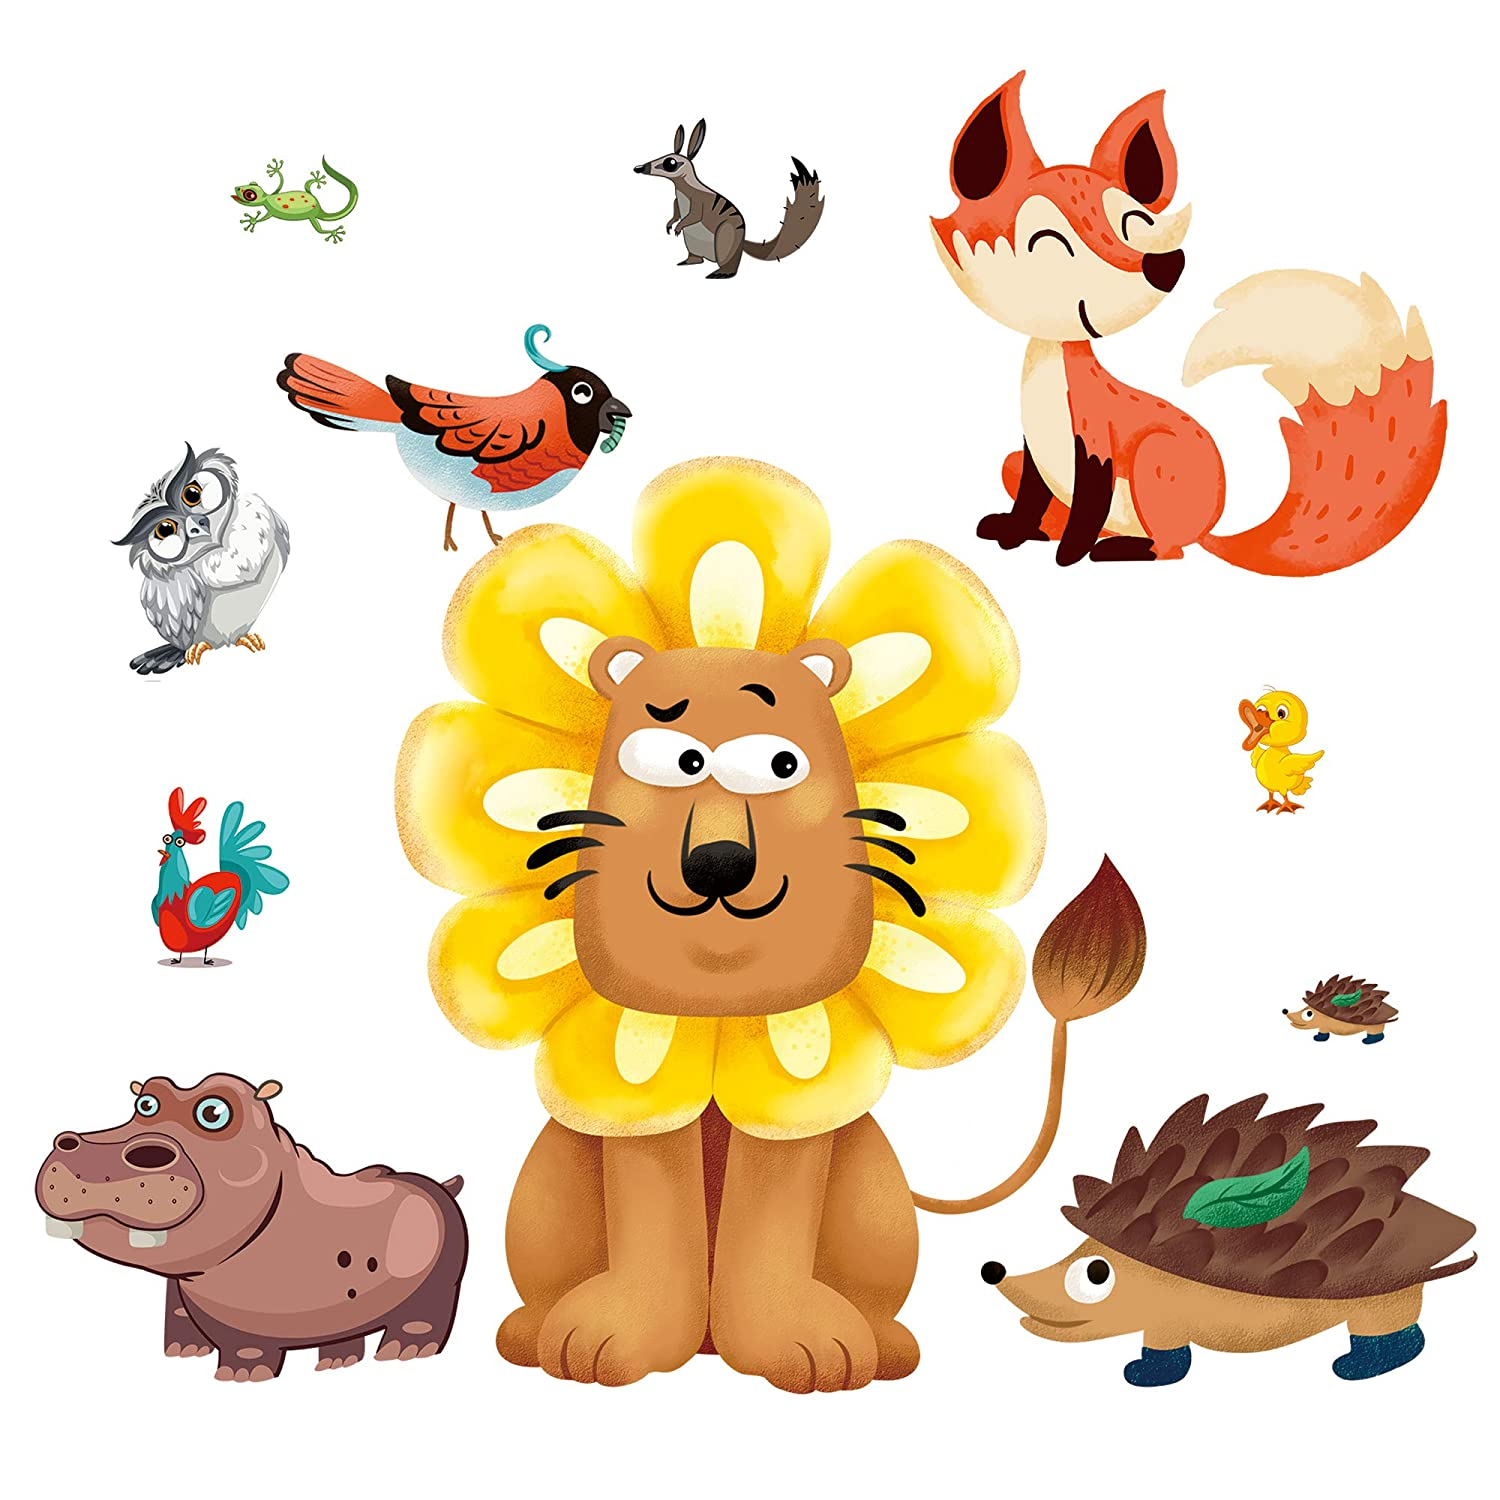 Removable 3D Giant Jungle Animals Wall Stickers Lion Owl Bird Fox Wall Decals Peel and Stick Art Decor for Kids Boys Baby Children Bedroom Living Room Bathroom Classroom Playroom Nursery (Lion)